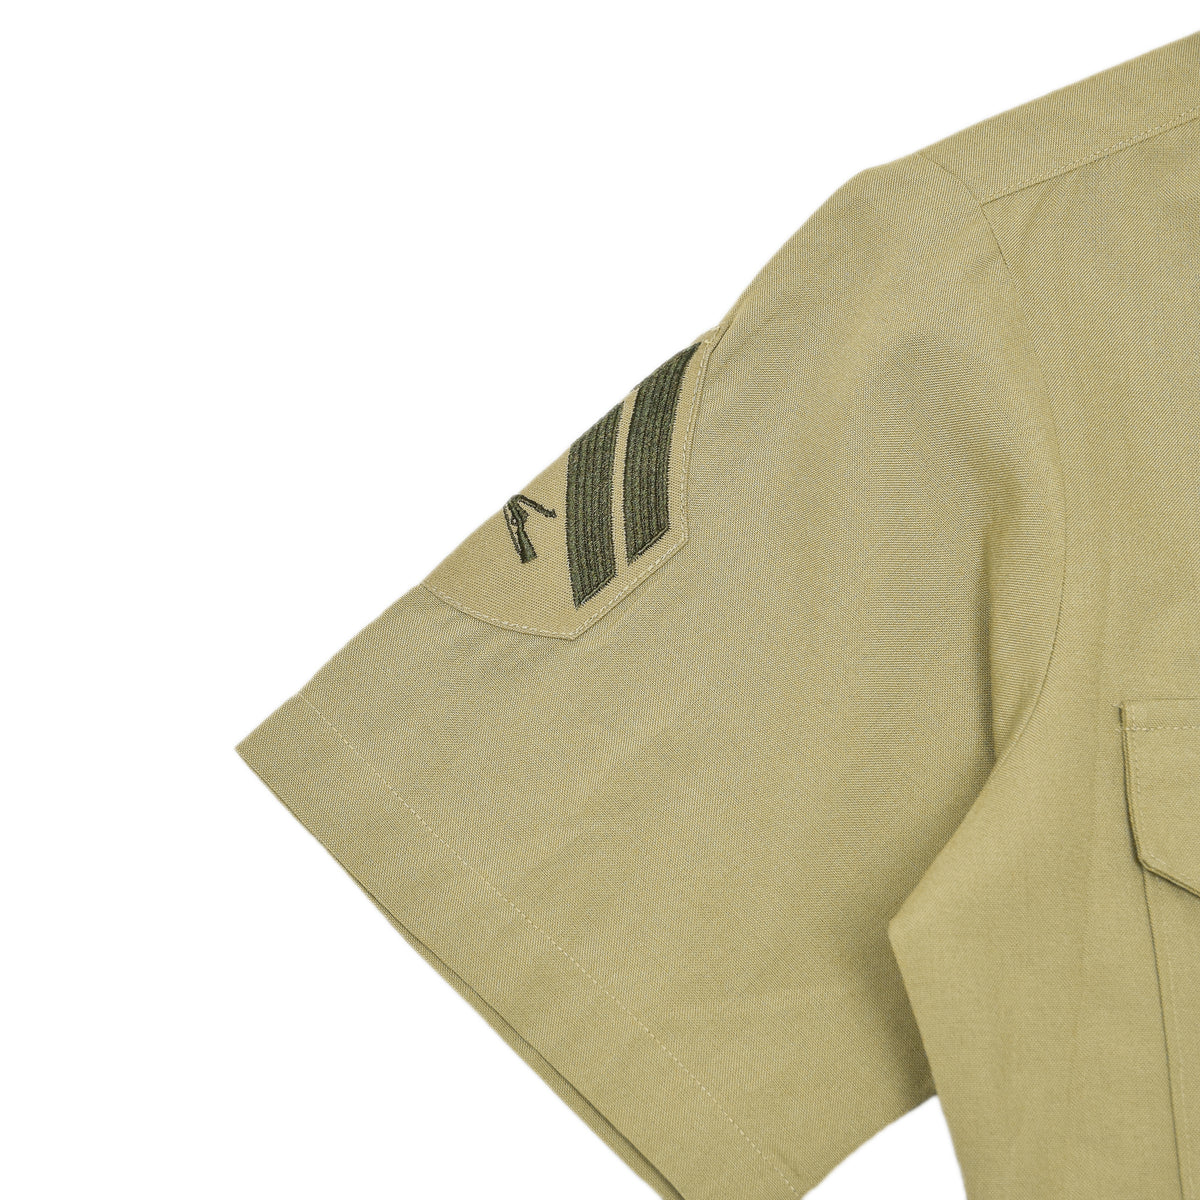 US Army DSCP Short Sleeve Khaki Cotton Military Field Shirt S arm badge